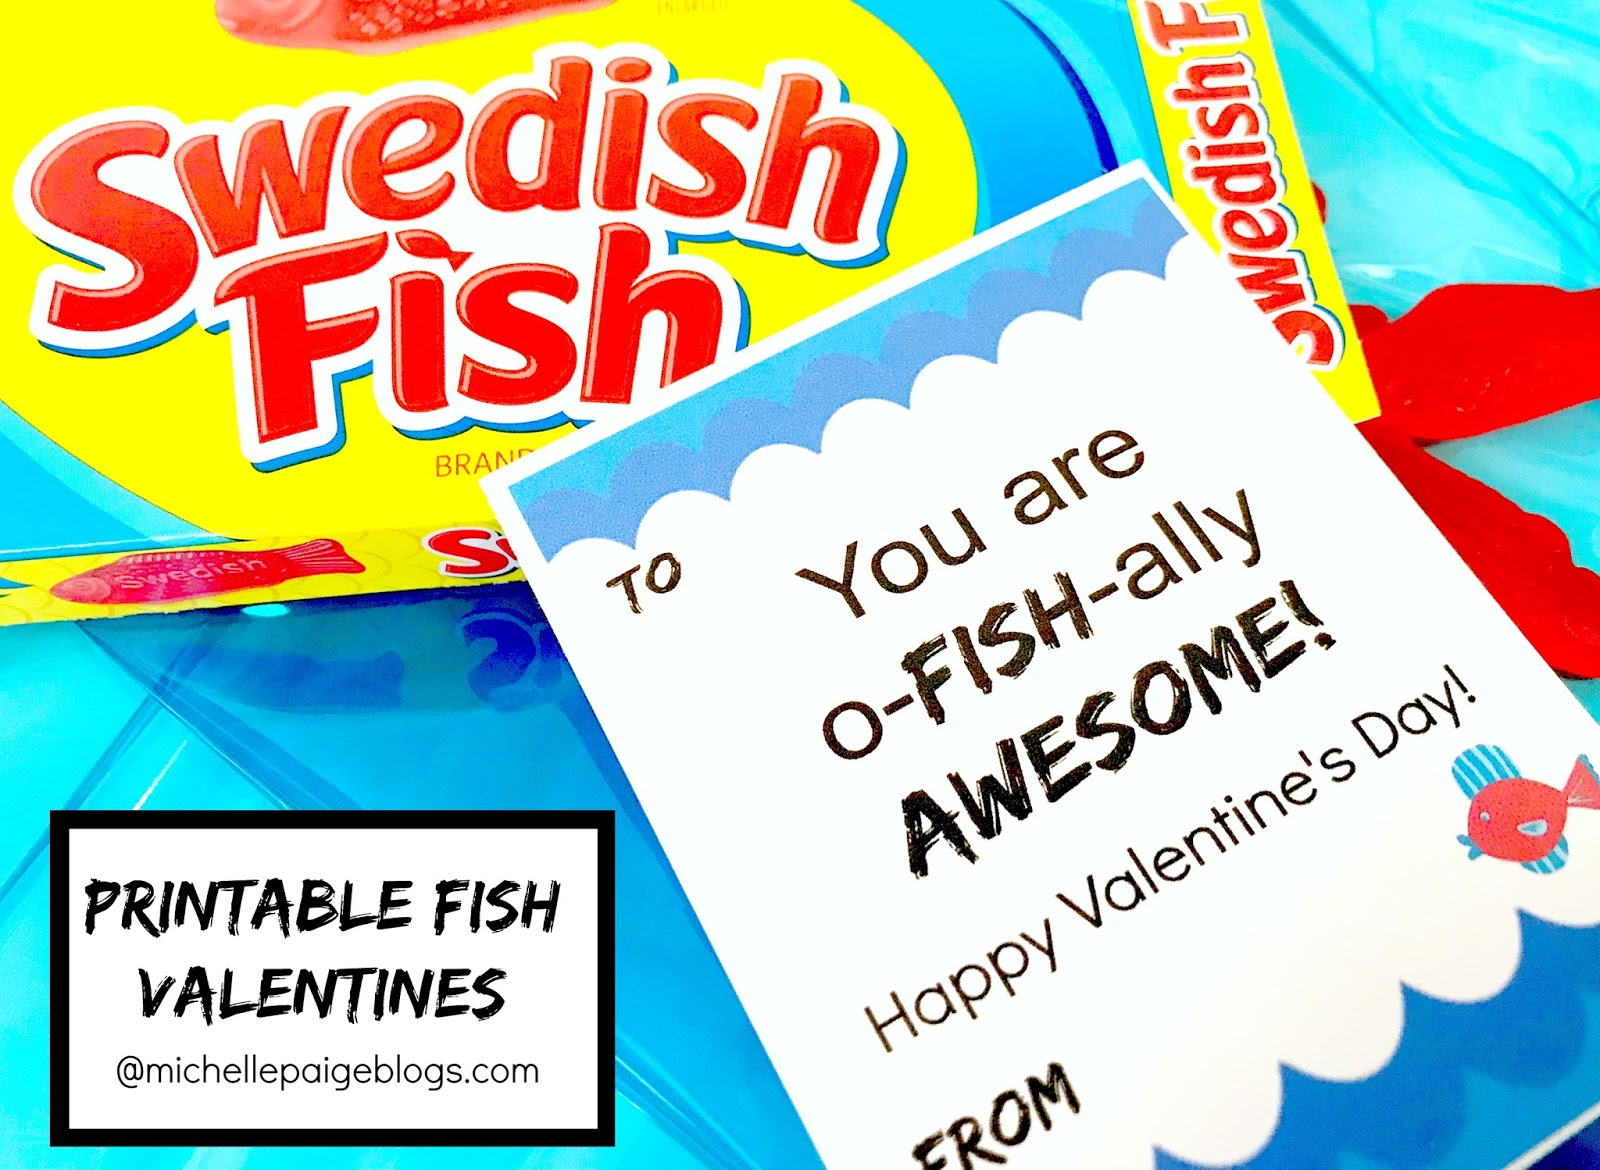 Fish Pun Printable Valentines @michellepaigeblogs.com